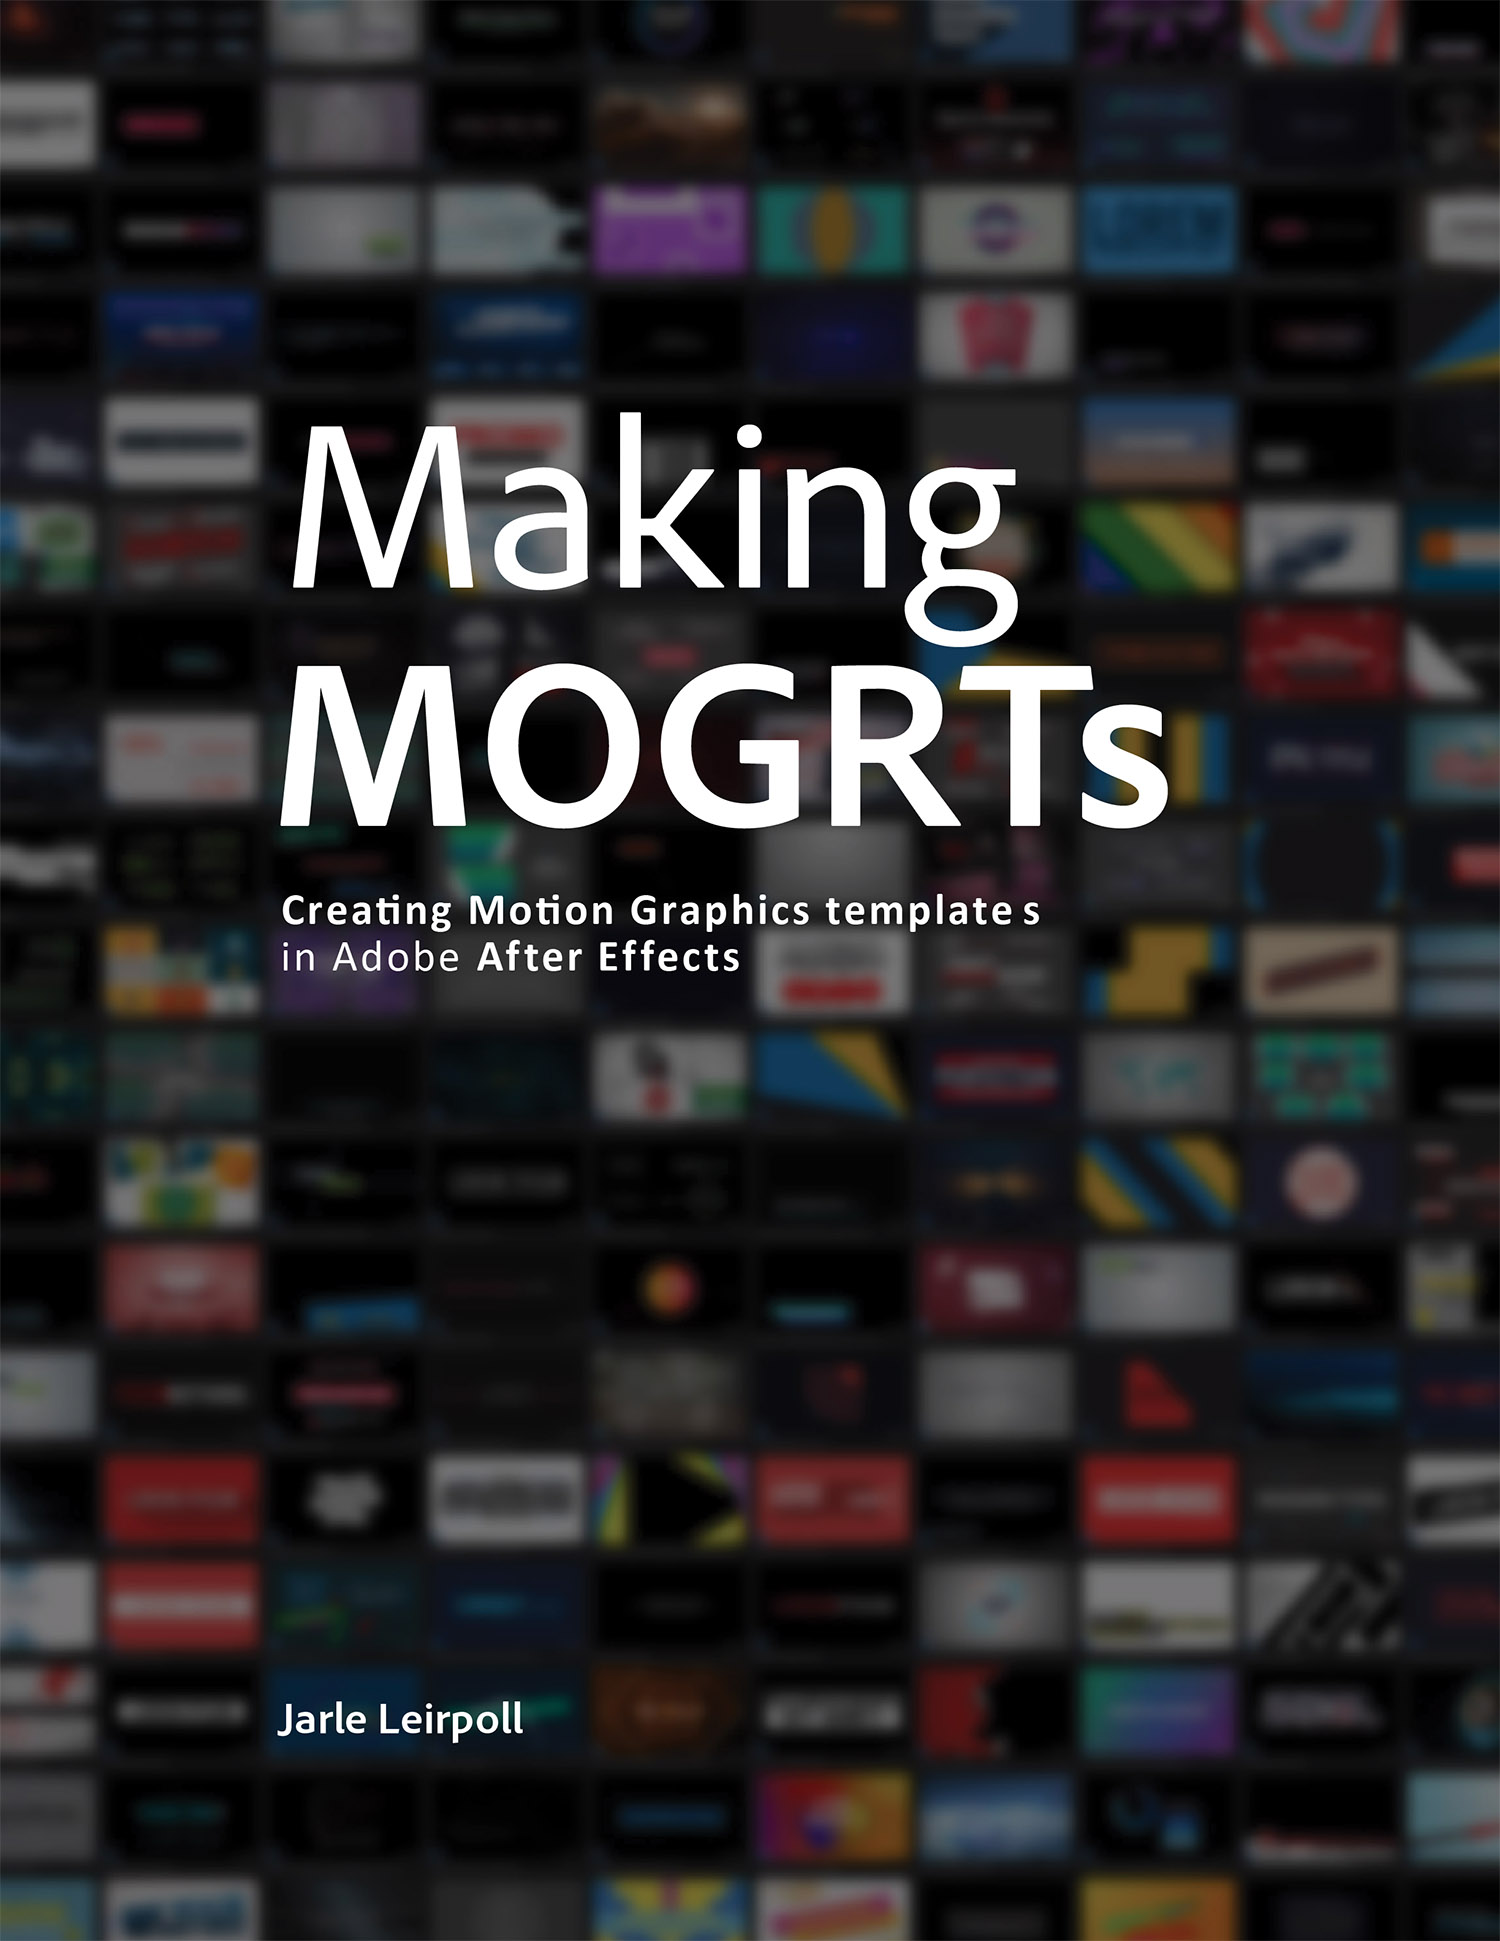 Free eBook on Making MOGRTs - PremierePro net